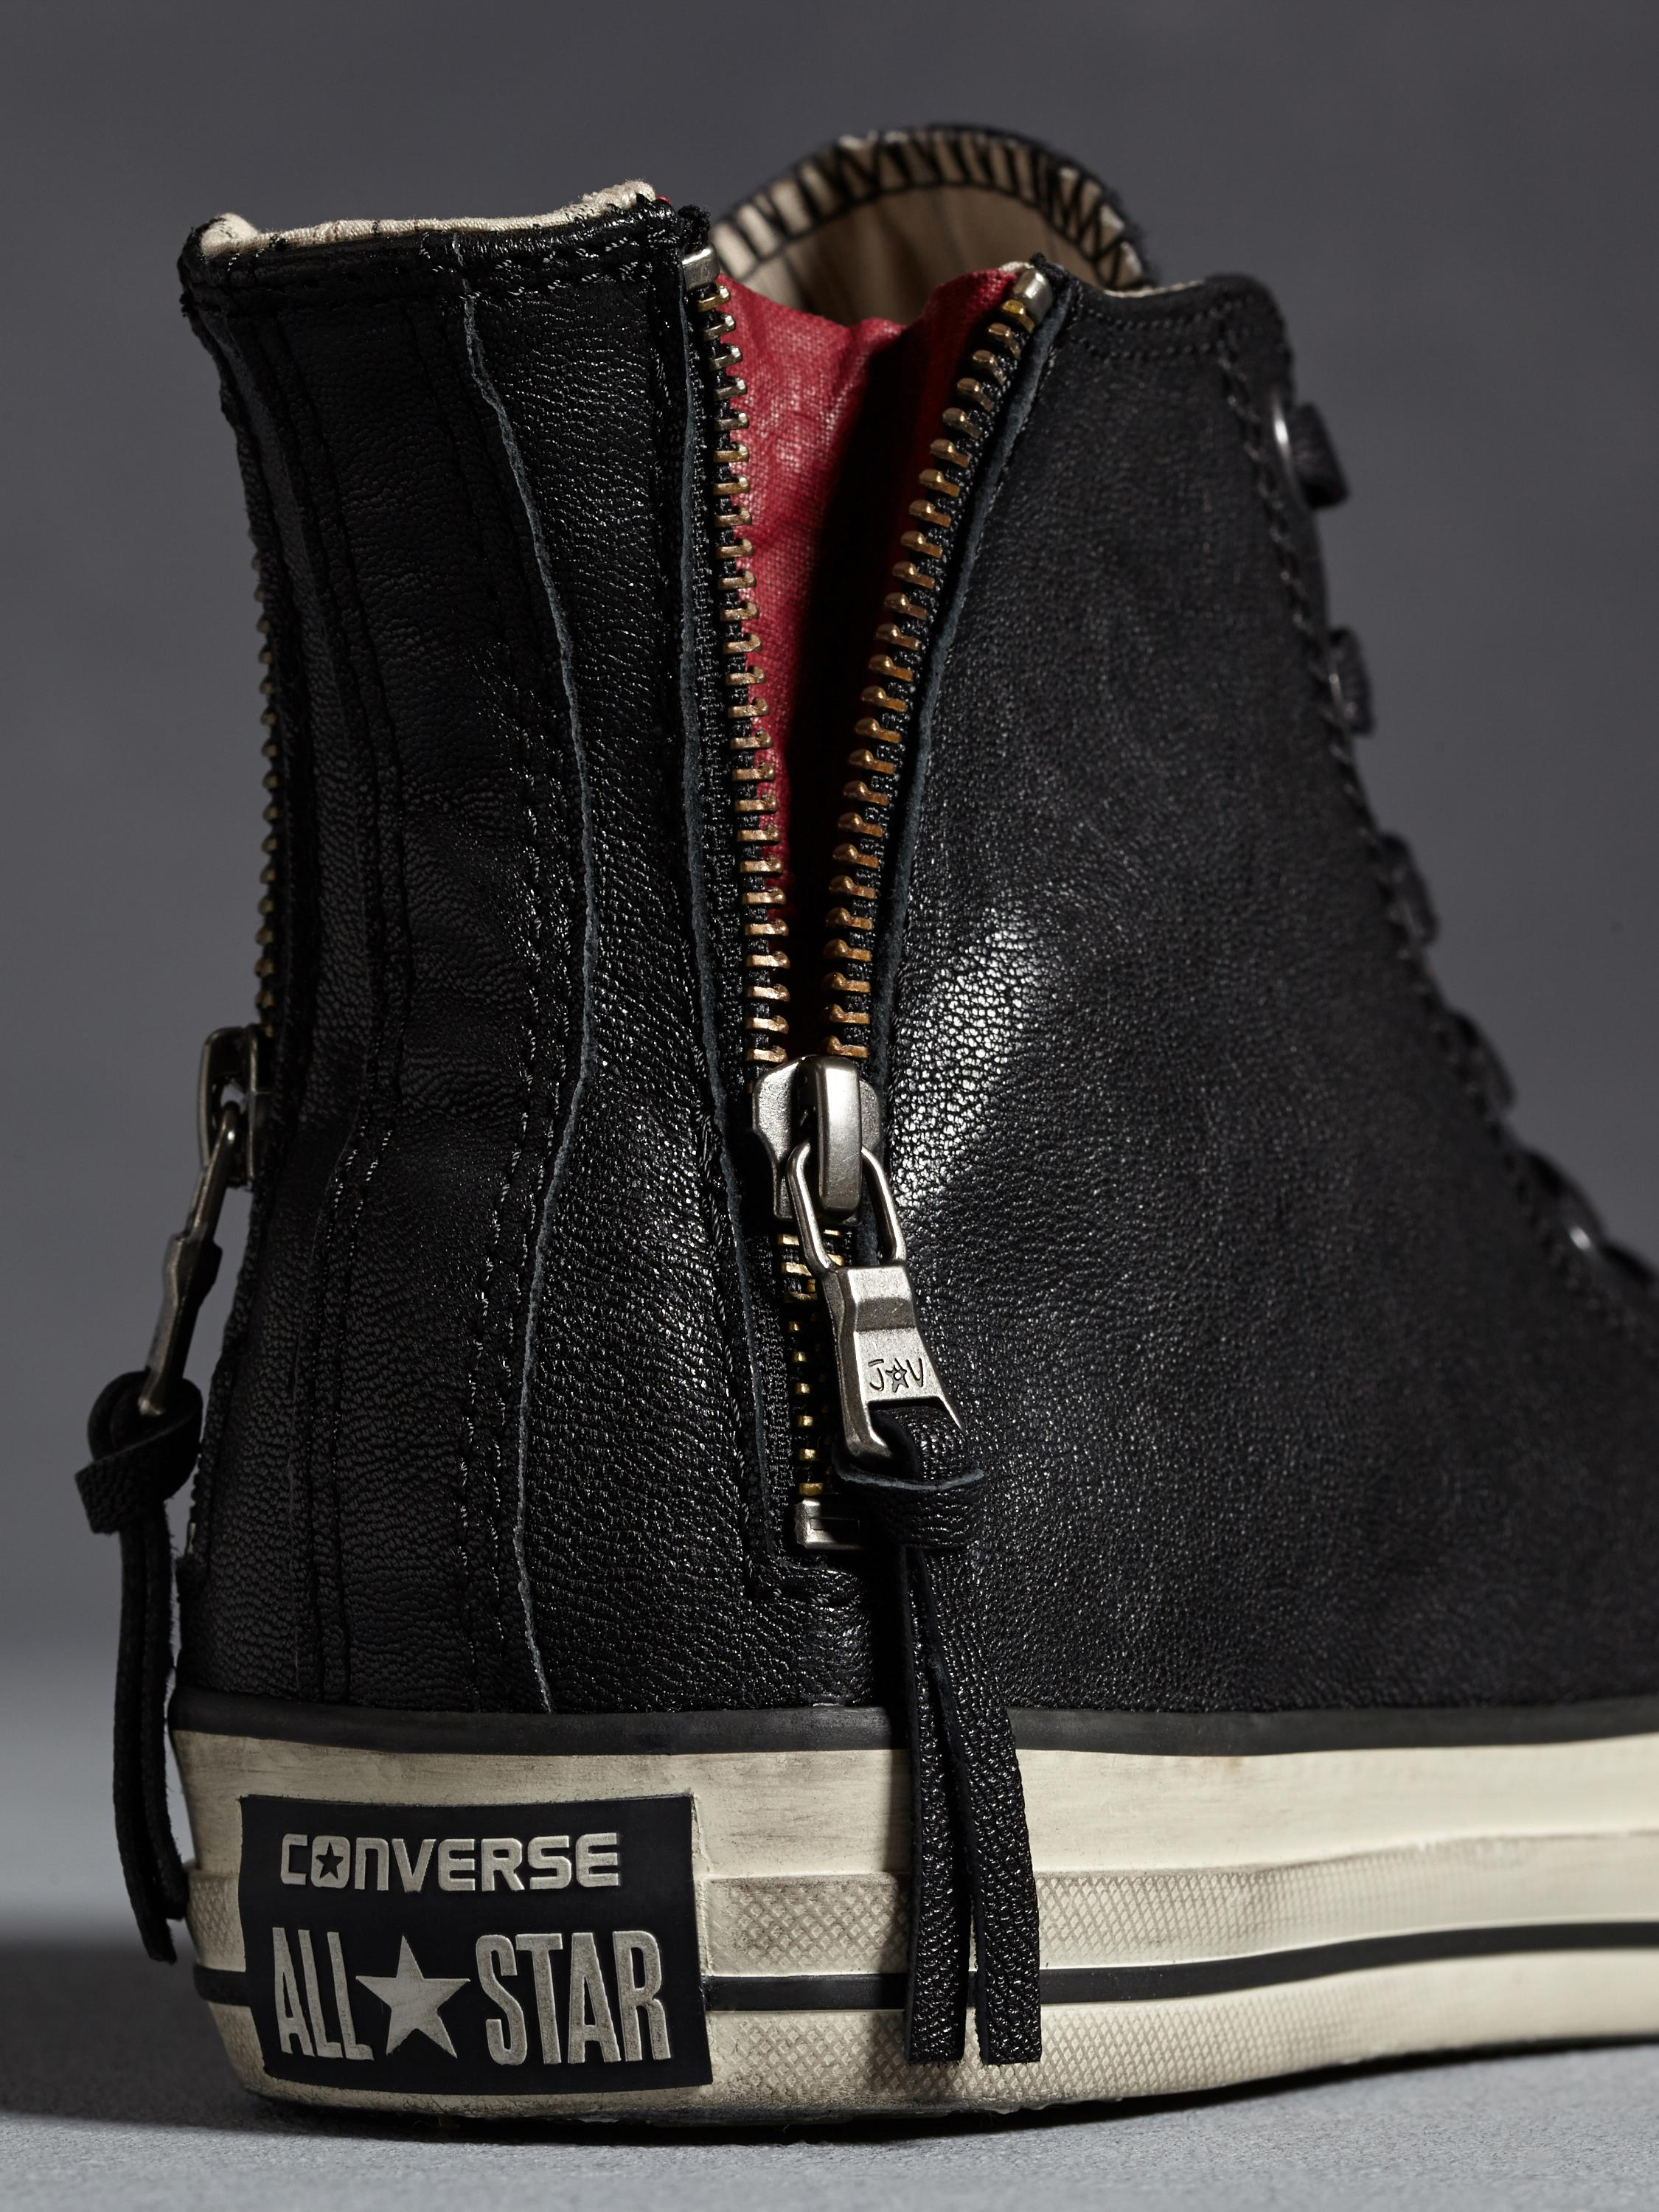 ccdd1002b01b35 Lyst - John Varvatos All Star Quito Leather Double Heel Chuck Taylor in  Black for Men